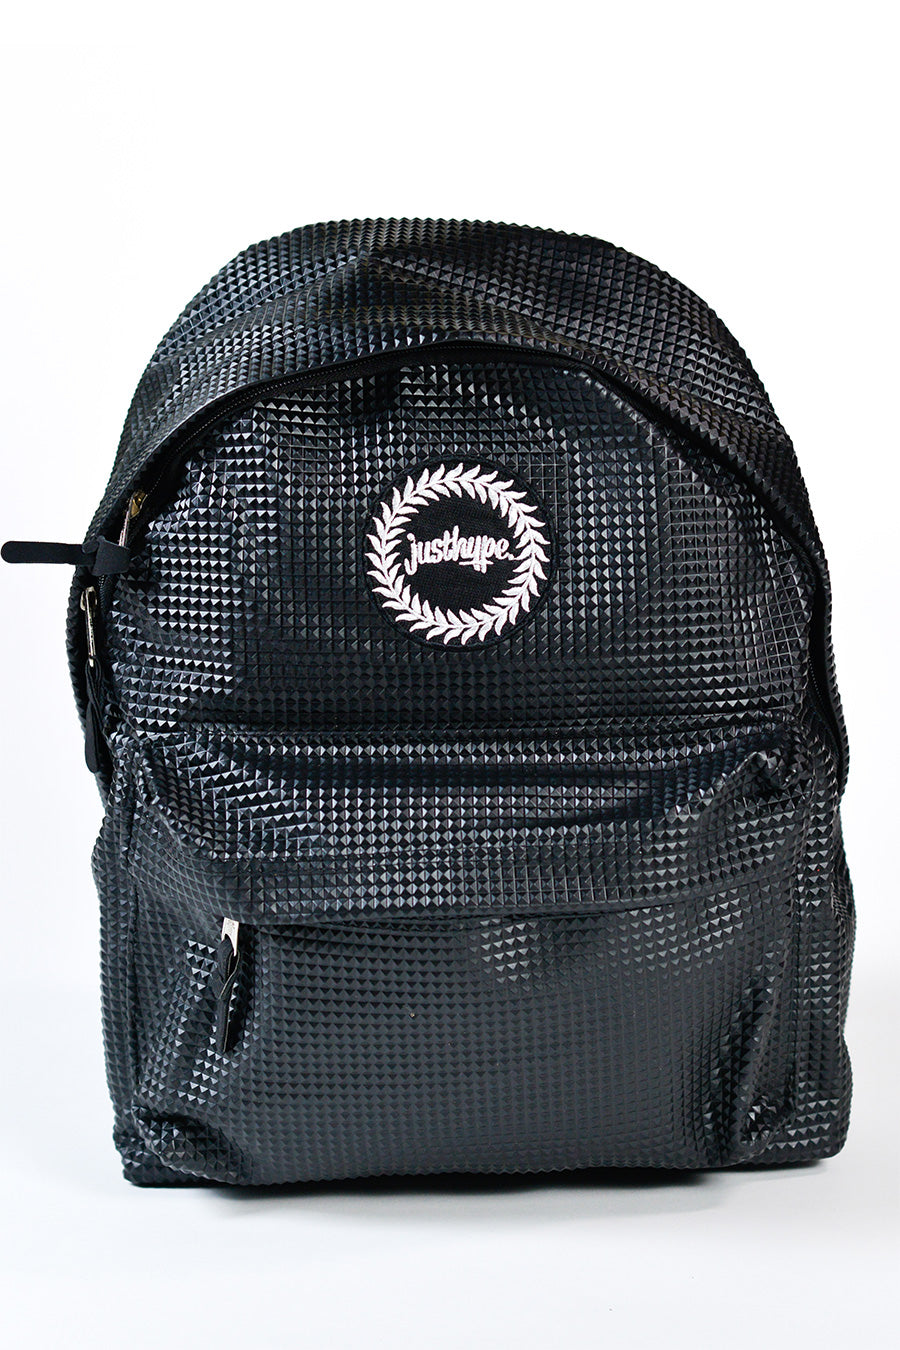 HYPE DEADLINE BACKPACK